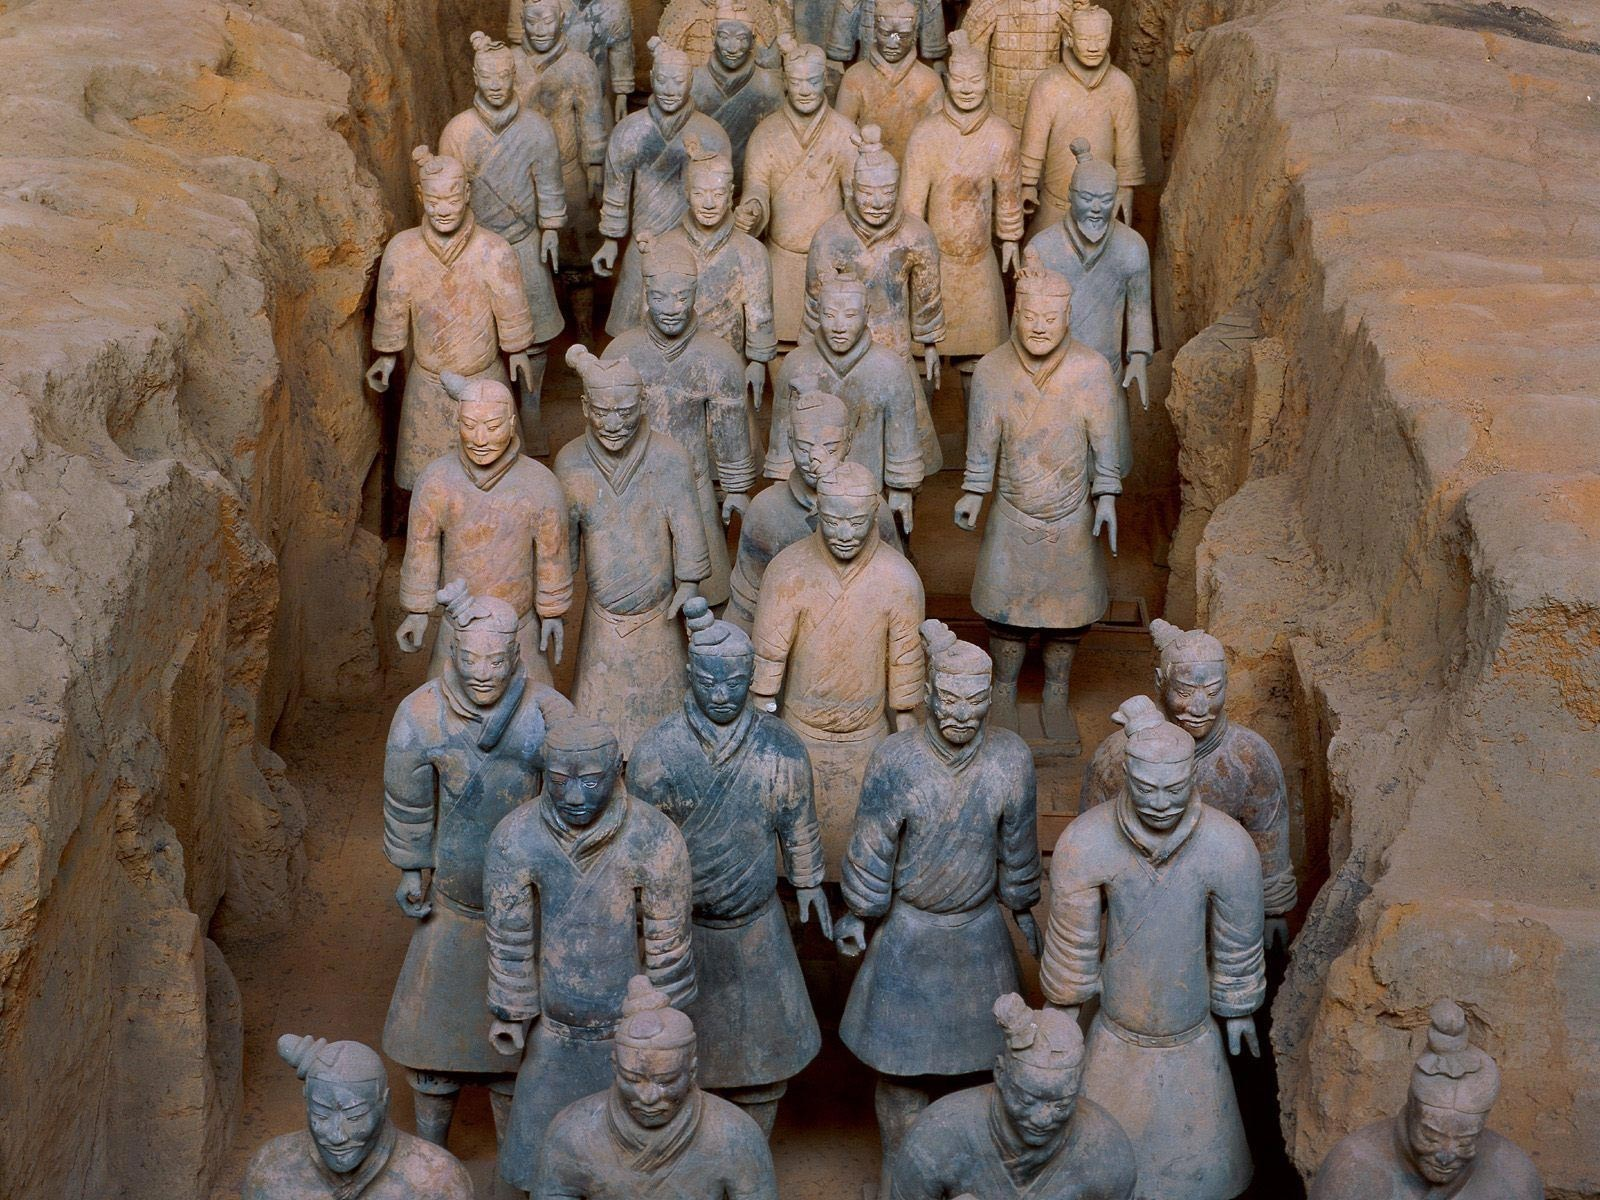 Terracotta Army China statues